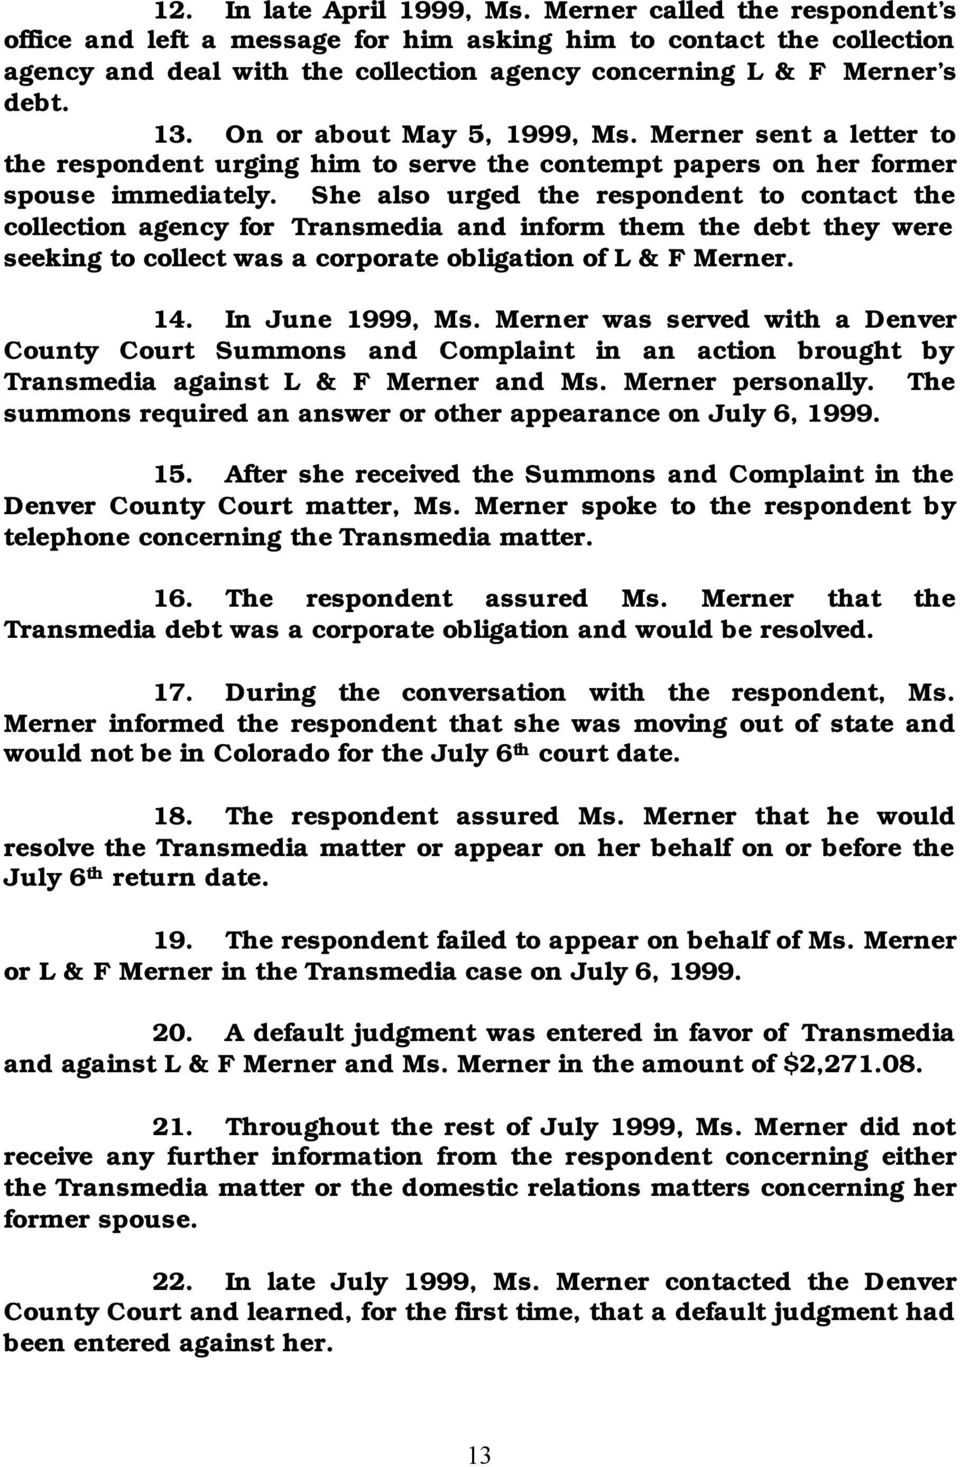 On or about May 5, 1999, Ms. Merner sent a letter to the respondent urging him to serve the contempt papers on her former spouse immediately.